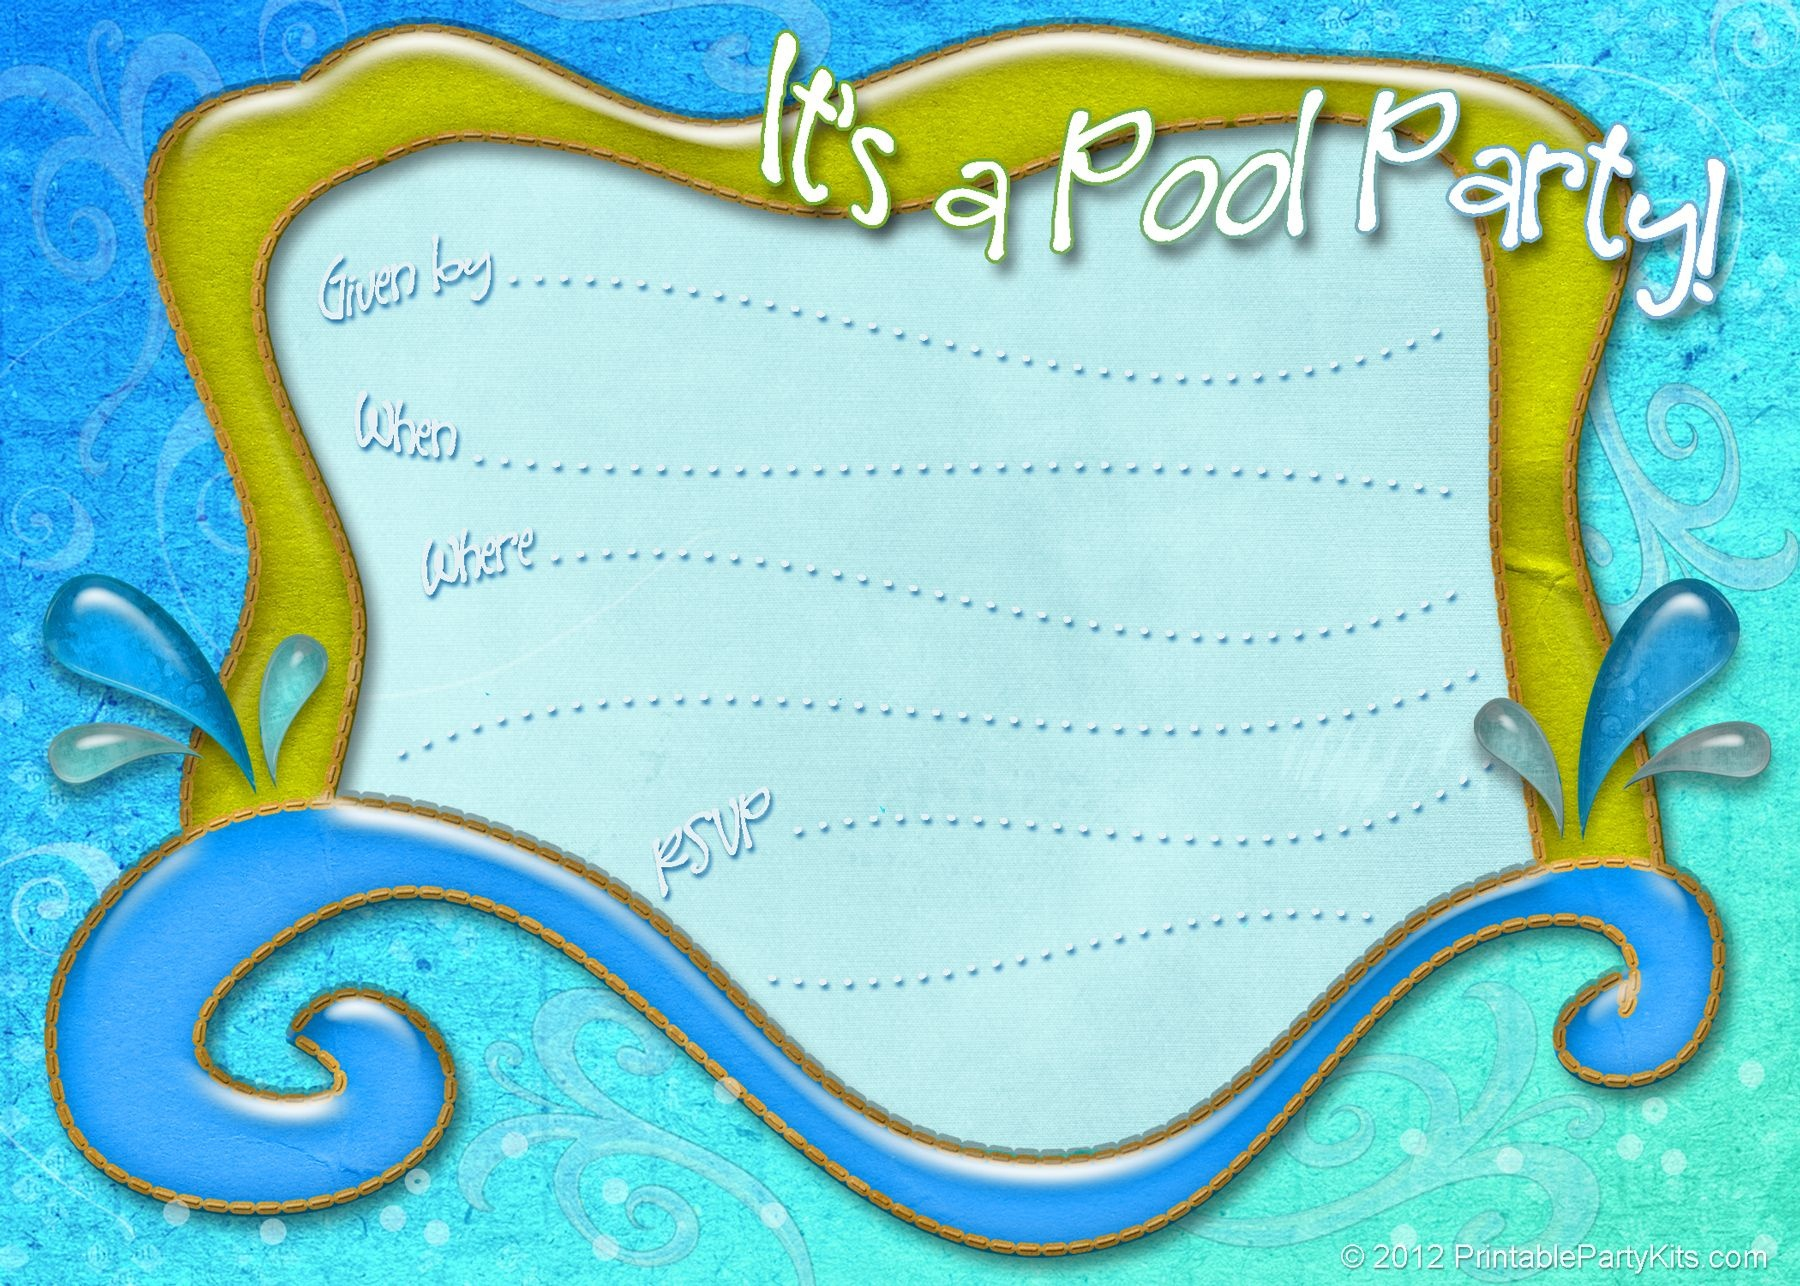 Free Printable Pool Party Invitation Template From - Free Printable Pool Party Invitations